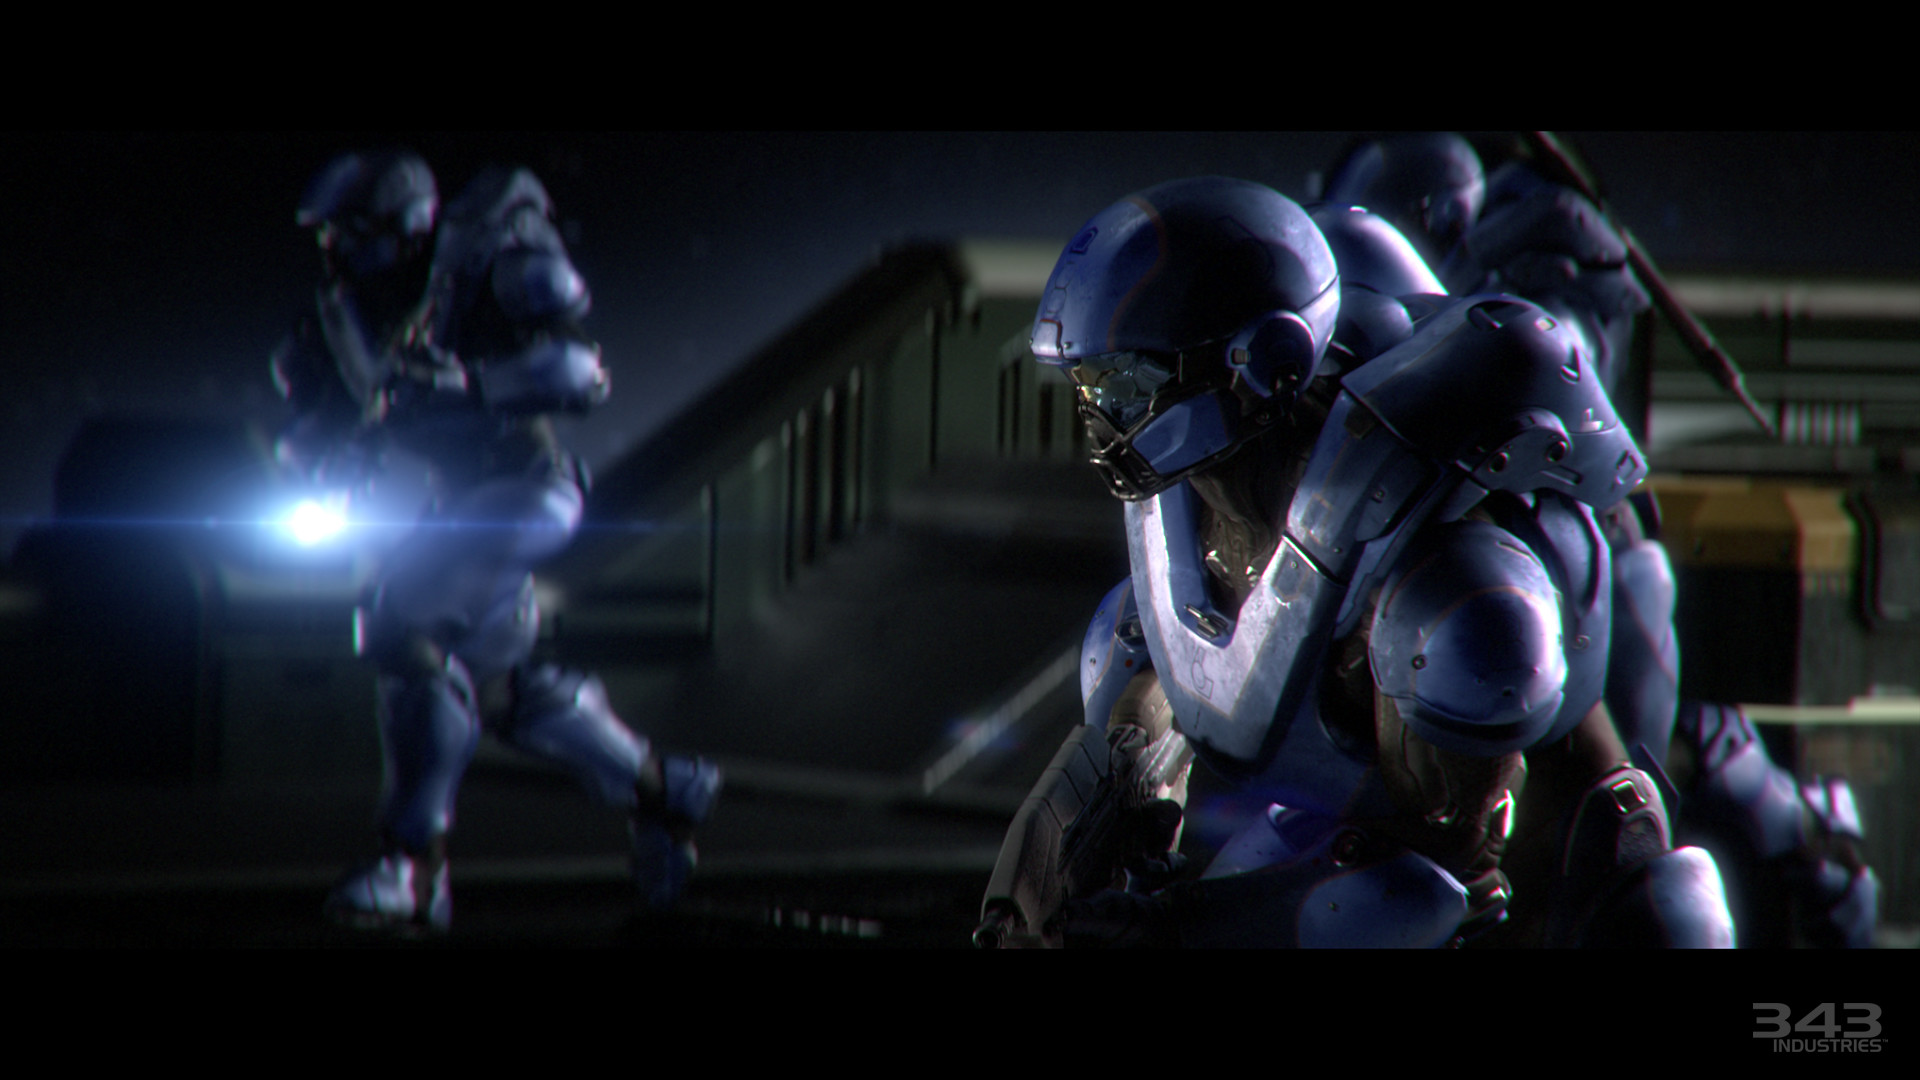 Training armour – Clearly has Halo 4 design elements, though leans a little  more towards the other styles